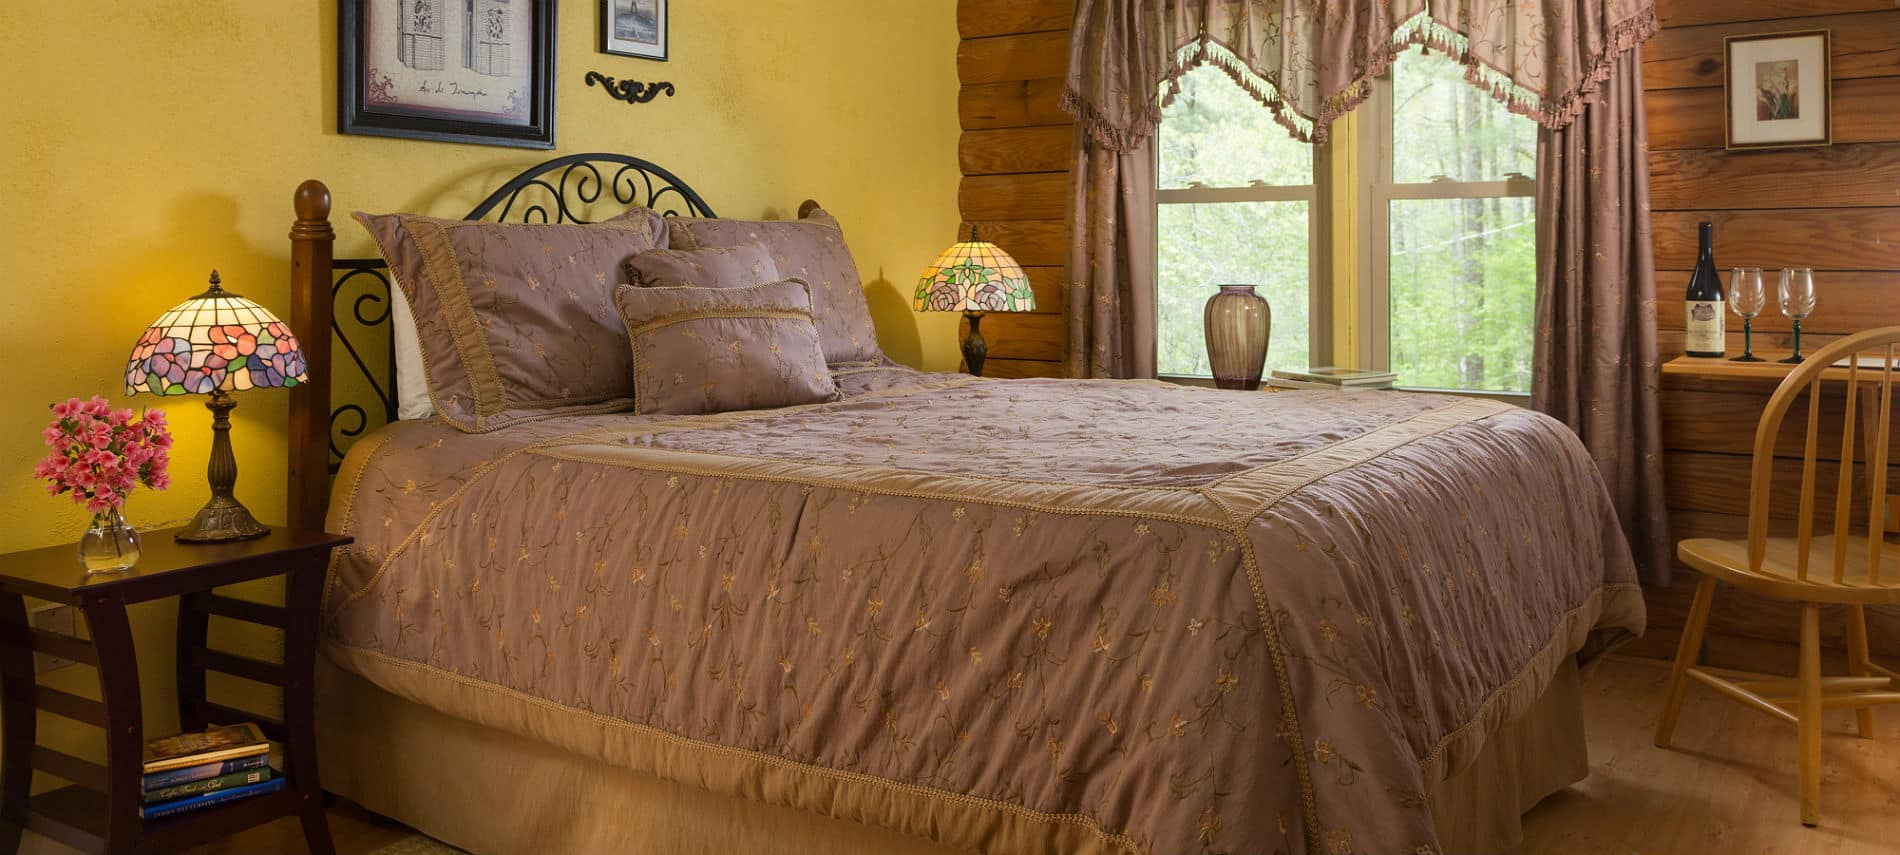 Neatly made bed with yellow and grey linens in a bedroom with yellow walls, white beadboard ceilings and tiffany lamps on the nightstands.